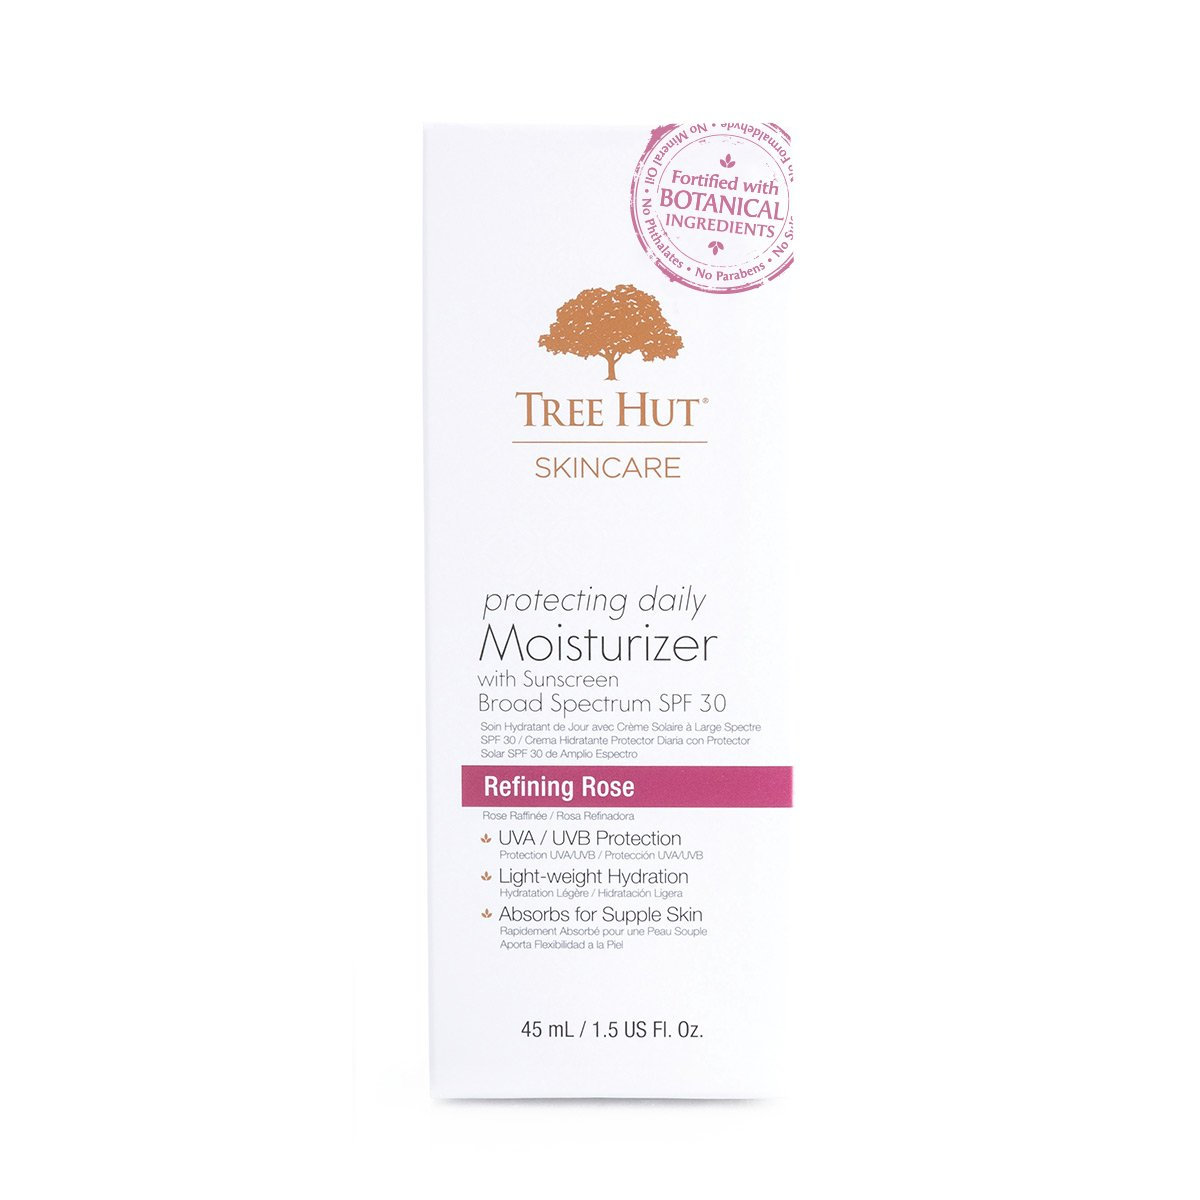 Tree Hut Skincare Protecting Daily Moisturizer with Sunscreen Broad Spectrum SPF-30, Refining Rose, 1.5 Fluid Ounce